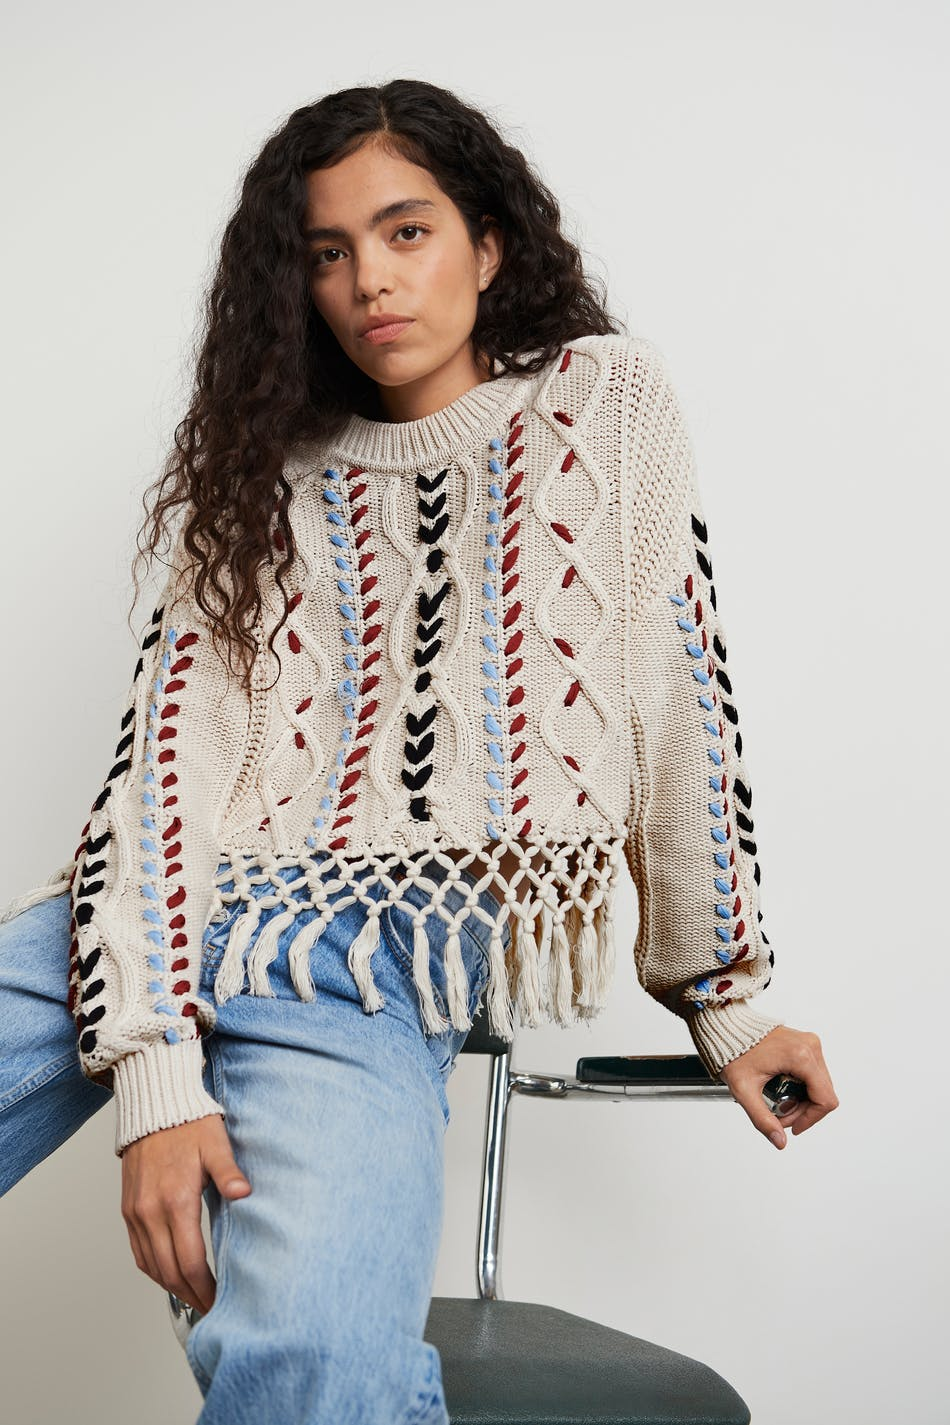 Gina Tricot Grace knitted sweater